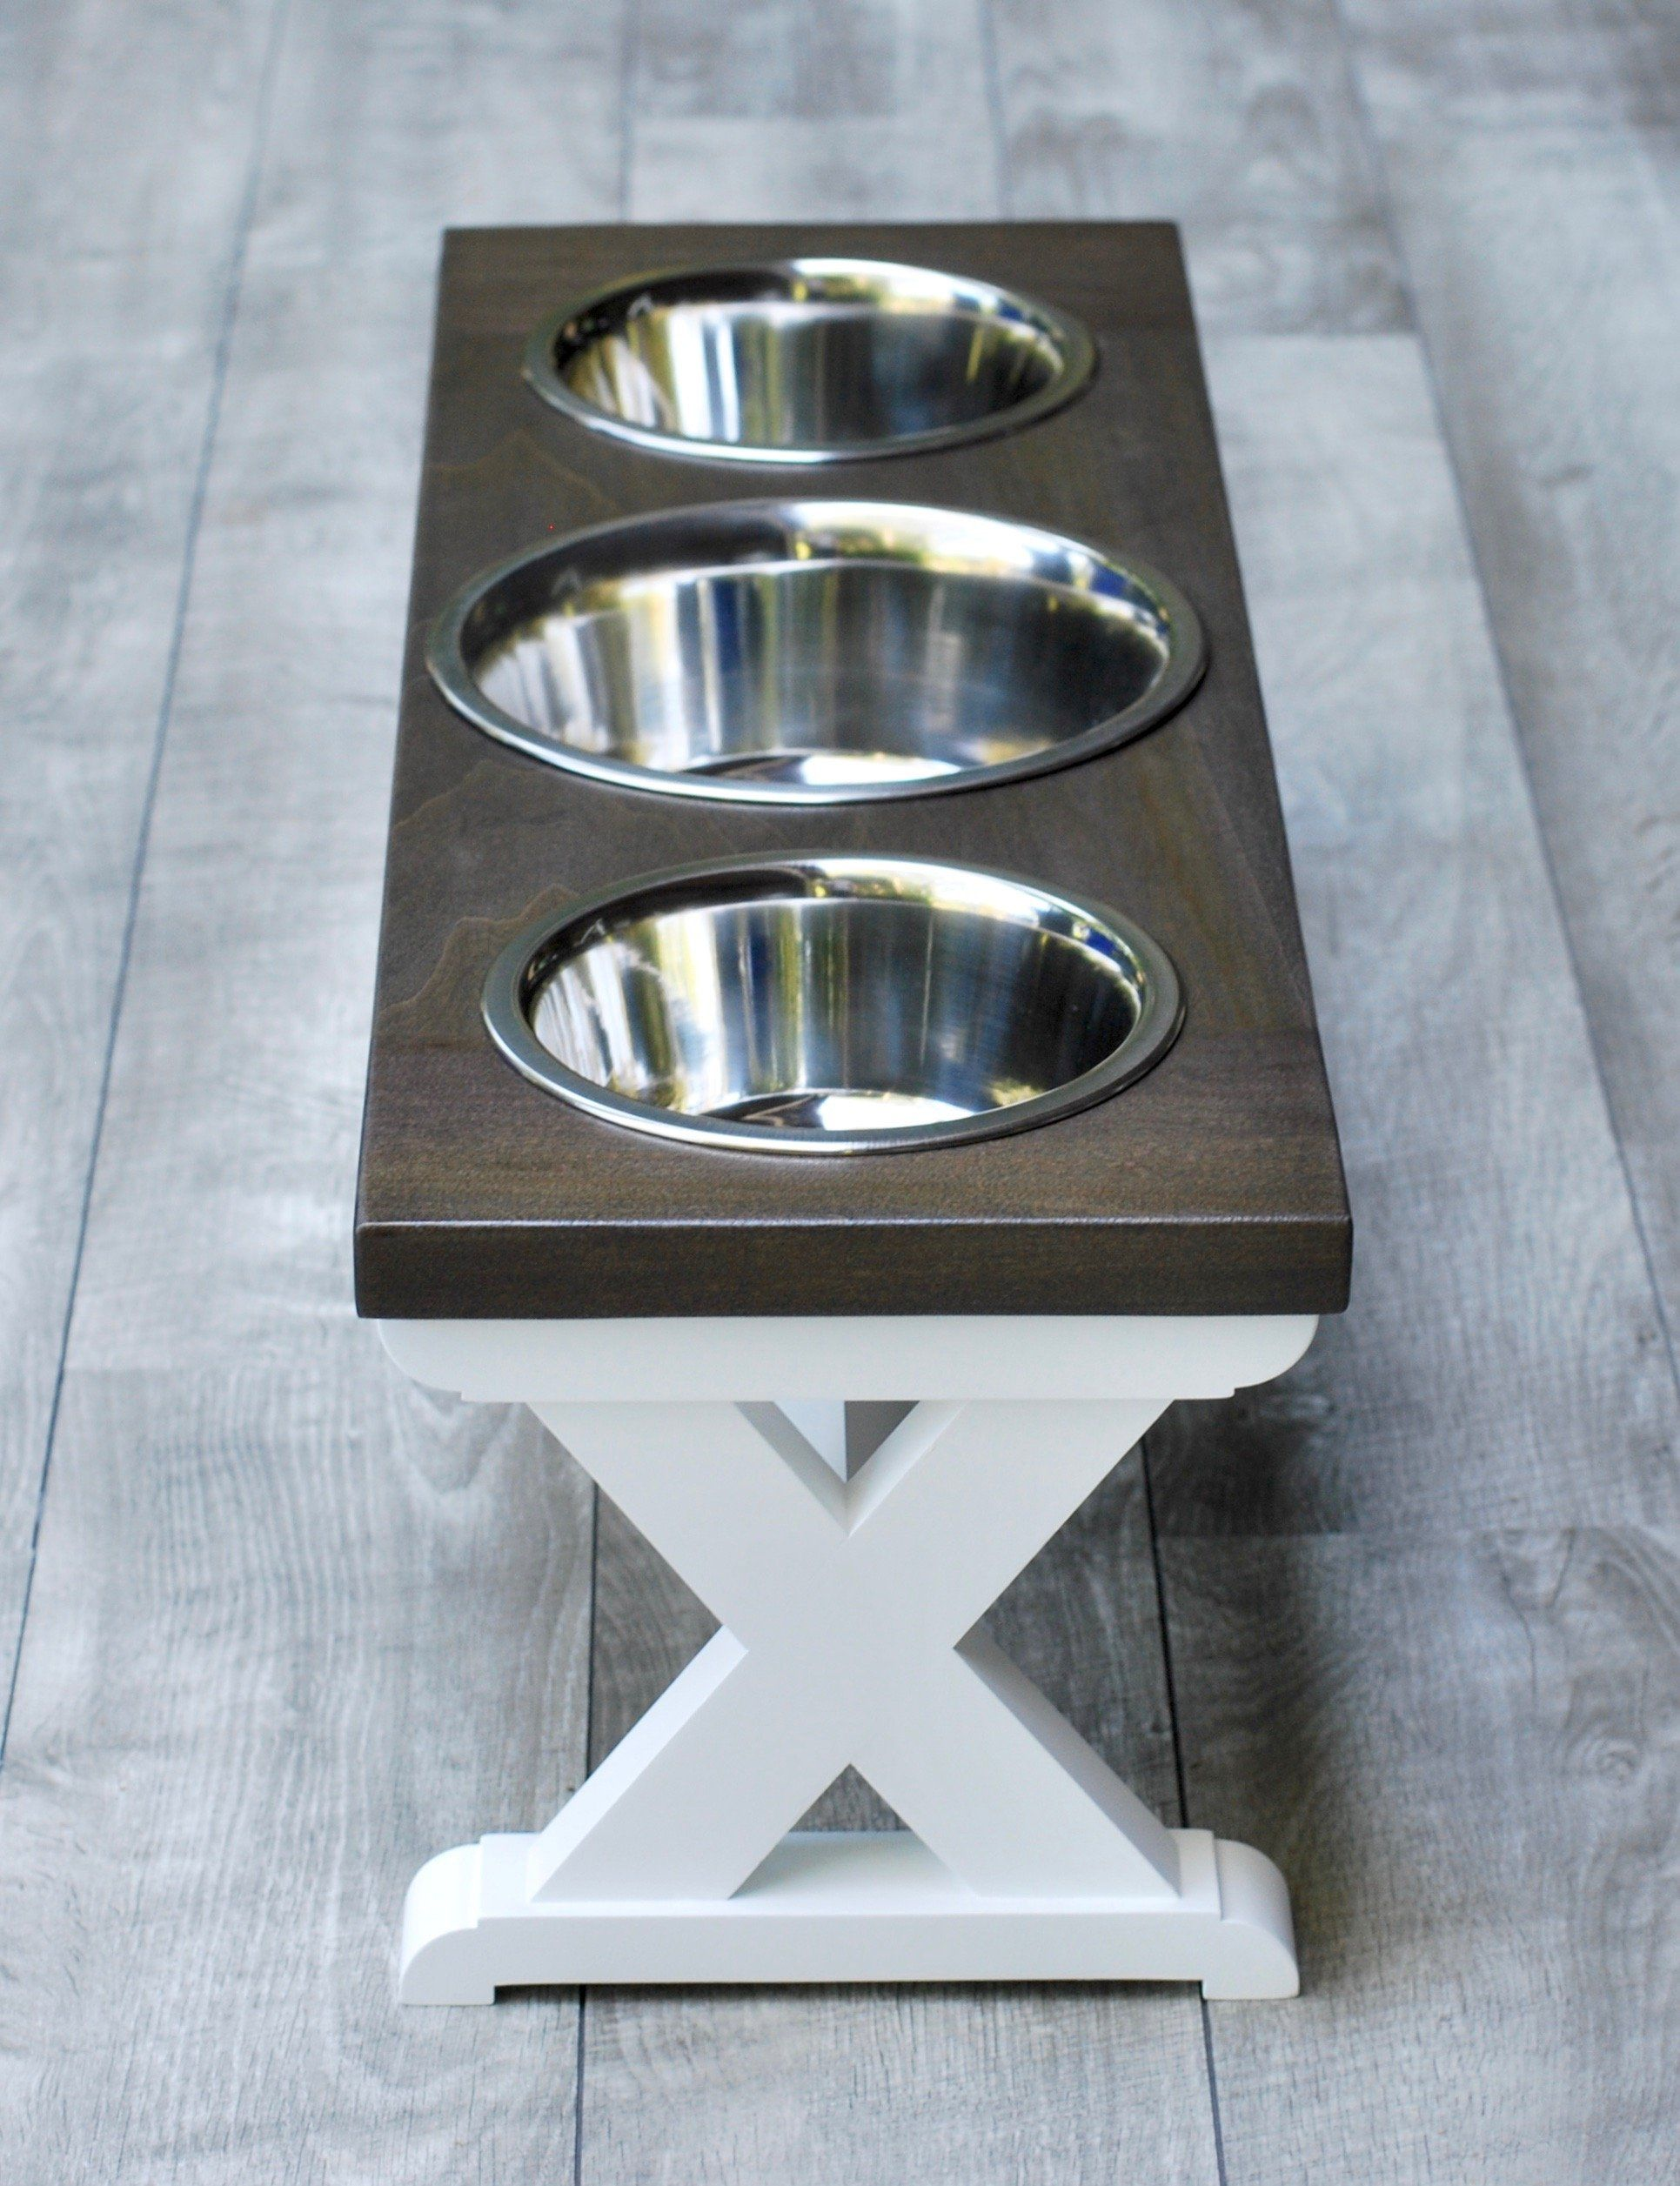 Medium Elevated Dog Bowl Stand - X Pattern Farmhouse Table - Three Bowl Stand